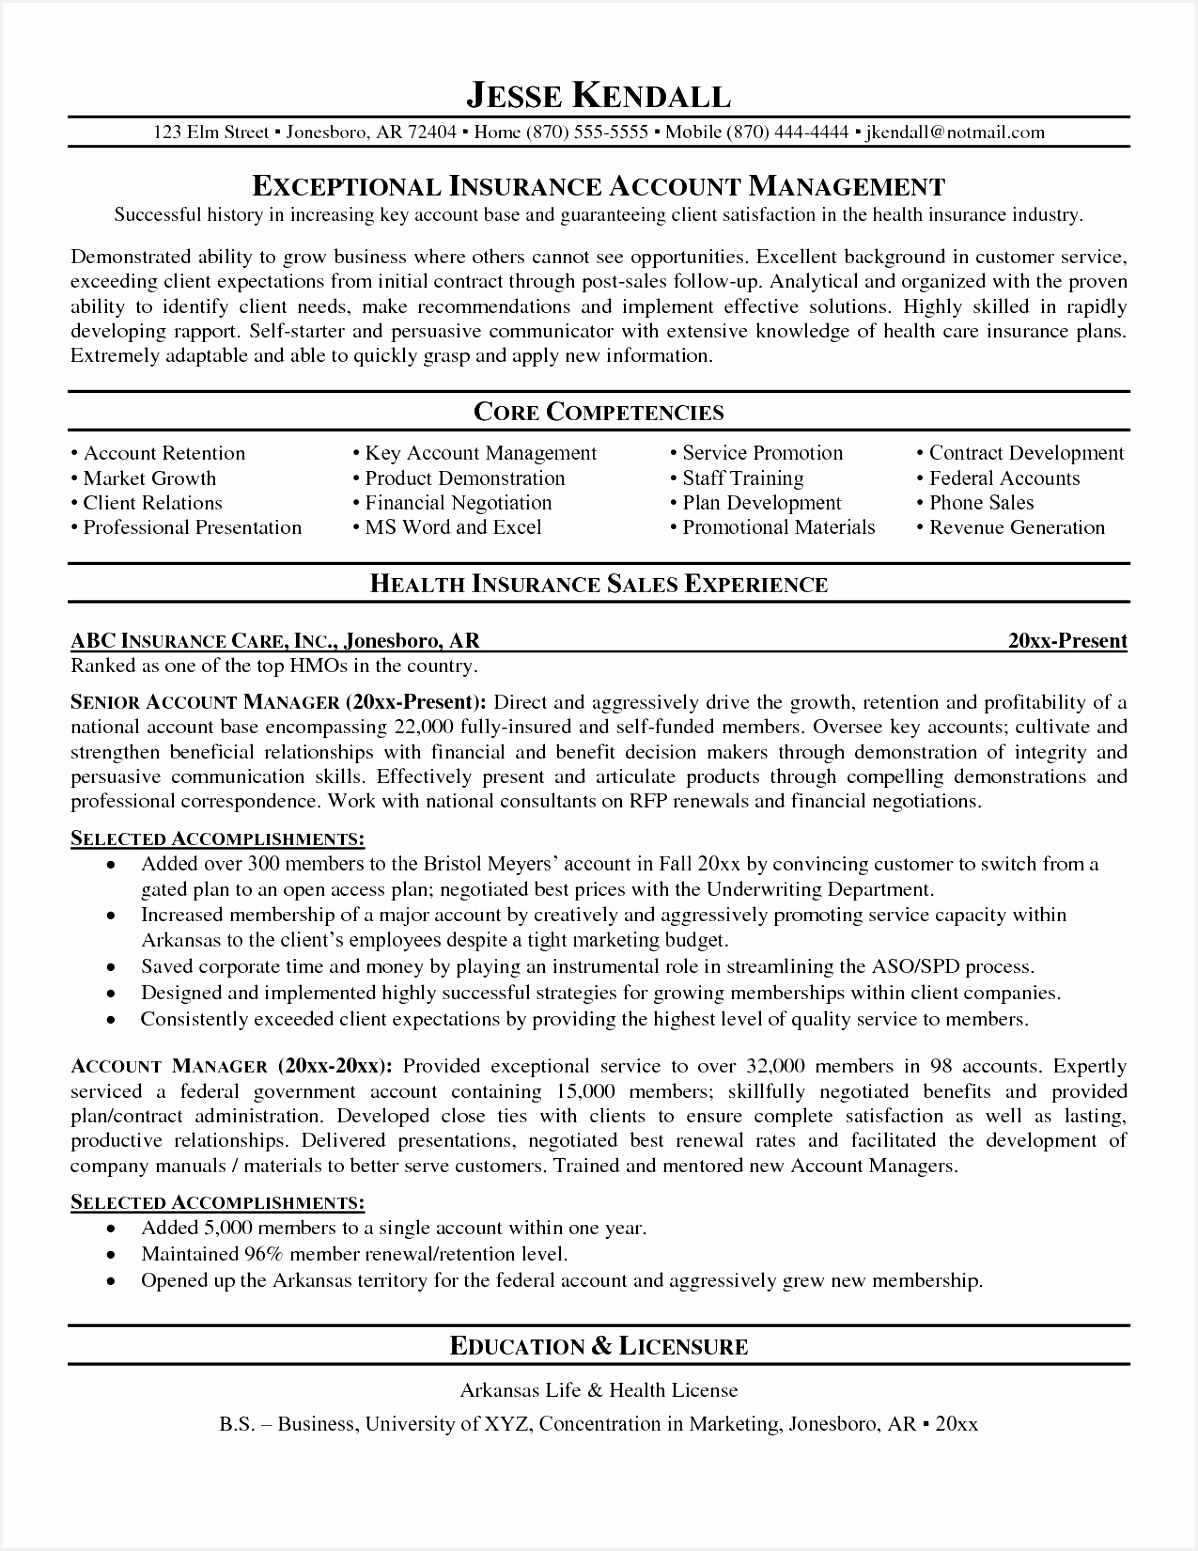 No Experience Medical Assistant Health Insurance Home Health Plan Care Requirements New Home Health Care Best Template For Management New 155111986mgke